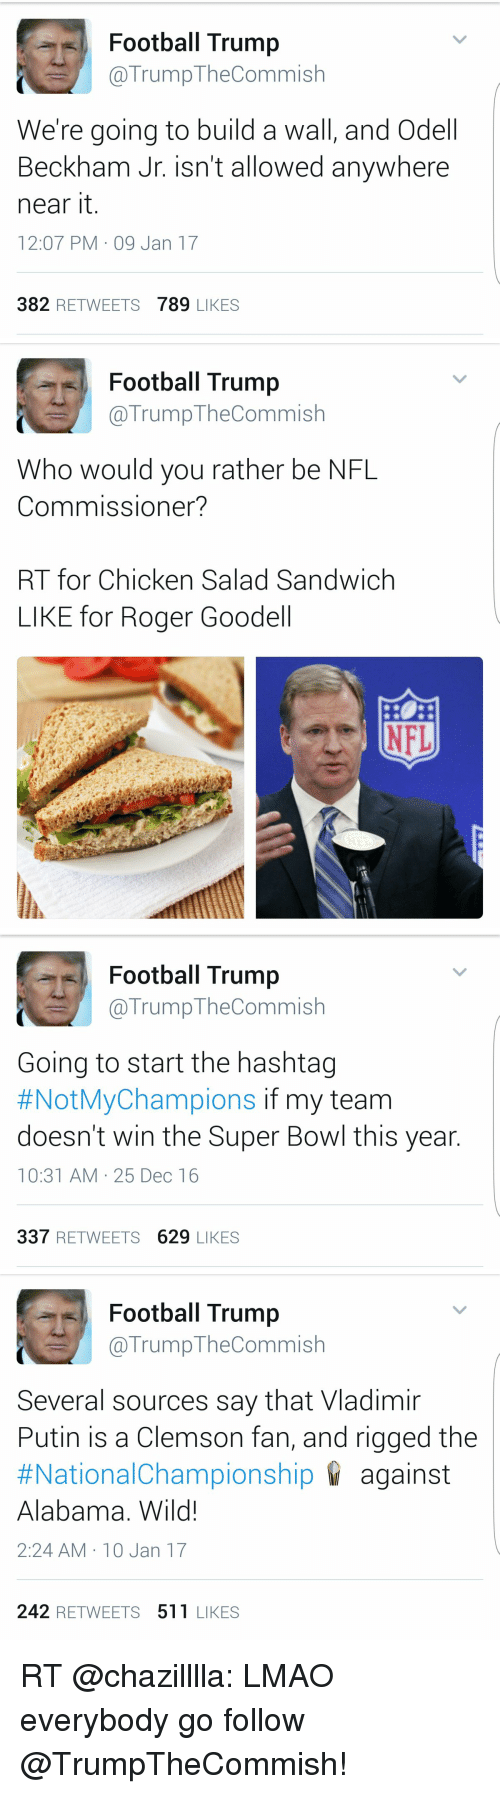 Odell Beckham Jr., Roger, and Roger Goodell: Football Trump  TrumpTheCommish  We're going to build a wall, and Odell  Beckham Jr. isn't allowed anywhere  near it  12:07 PM 09 Jan 17  382  RETWEETS  789 LIKES   Football Trump  @Trump The Commish  Who would you rather be NFL  Commissioner?  RT for Chicken Salad Sandwich  LIKE for Roger Goodell   Football Trump  @Trump Commish  Going to start the hashtag  #NotMyChampions if my team  doesn't win the Super Bowl this year  10:31 AM 25 Dec 16  337  RETWEETS 629  LIKES   Football Trump  (a Trump TheCommish  Several sources say that Vladimir  Putin is a Clemson fan, and rigged the  #National Championship against  Alabama. Wild!  2:24 AM 10 Jan 17  242 RETWEETS 511 LIKES RT @chazilllla: LMAO everybody go follow @TrumpTheCommish!